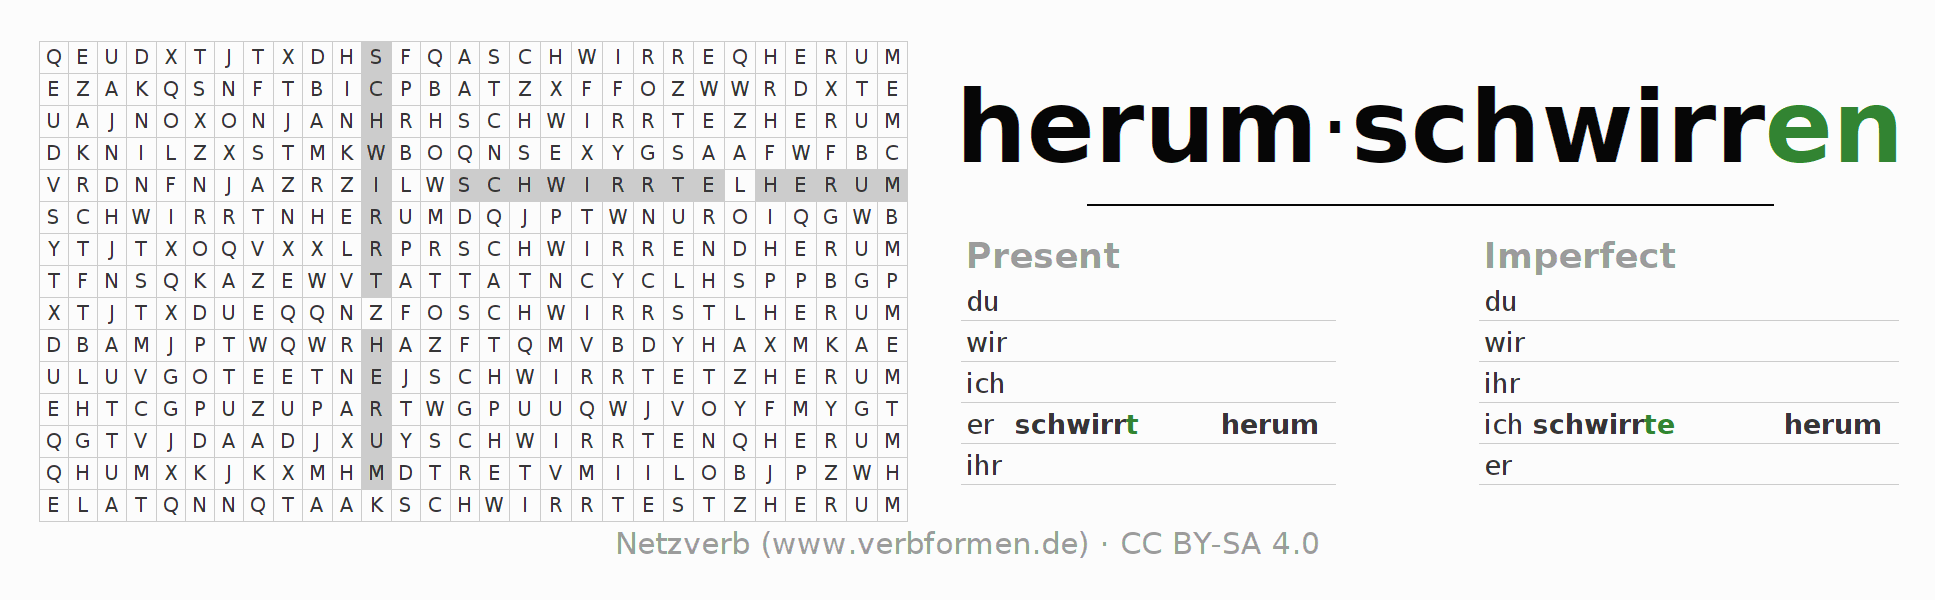 Word search puzzle for the conjugation of the verb herumschwirren